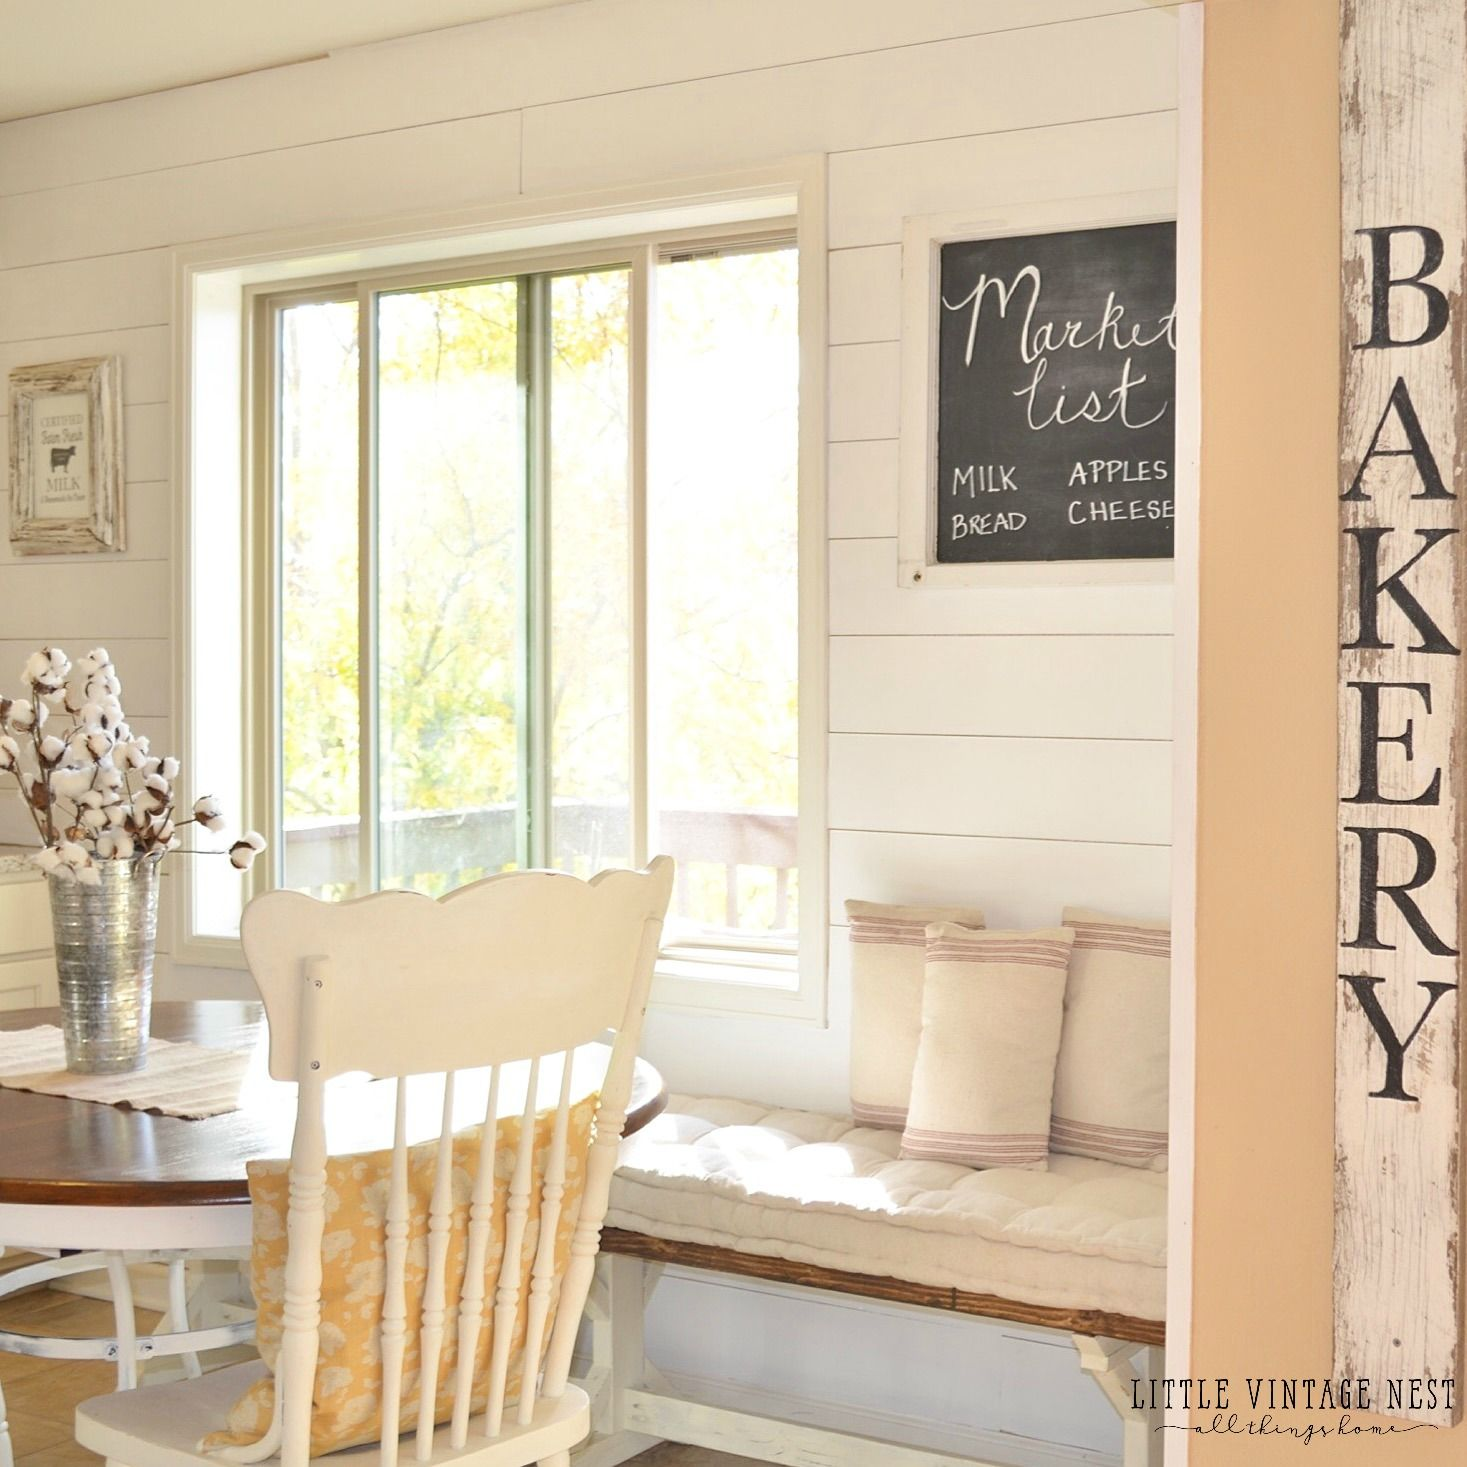 One of my favorite projects ever has been the bakery sign I made a few months back. I was actually inspired to do this after seeing a rustic bakery sign for sale on the Magnolia Market website. Being the thrifty gal I am, I decided making one of my own would be a less expensive option. I'm...Continue Reading